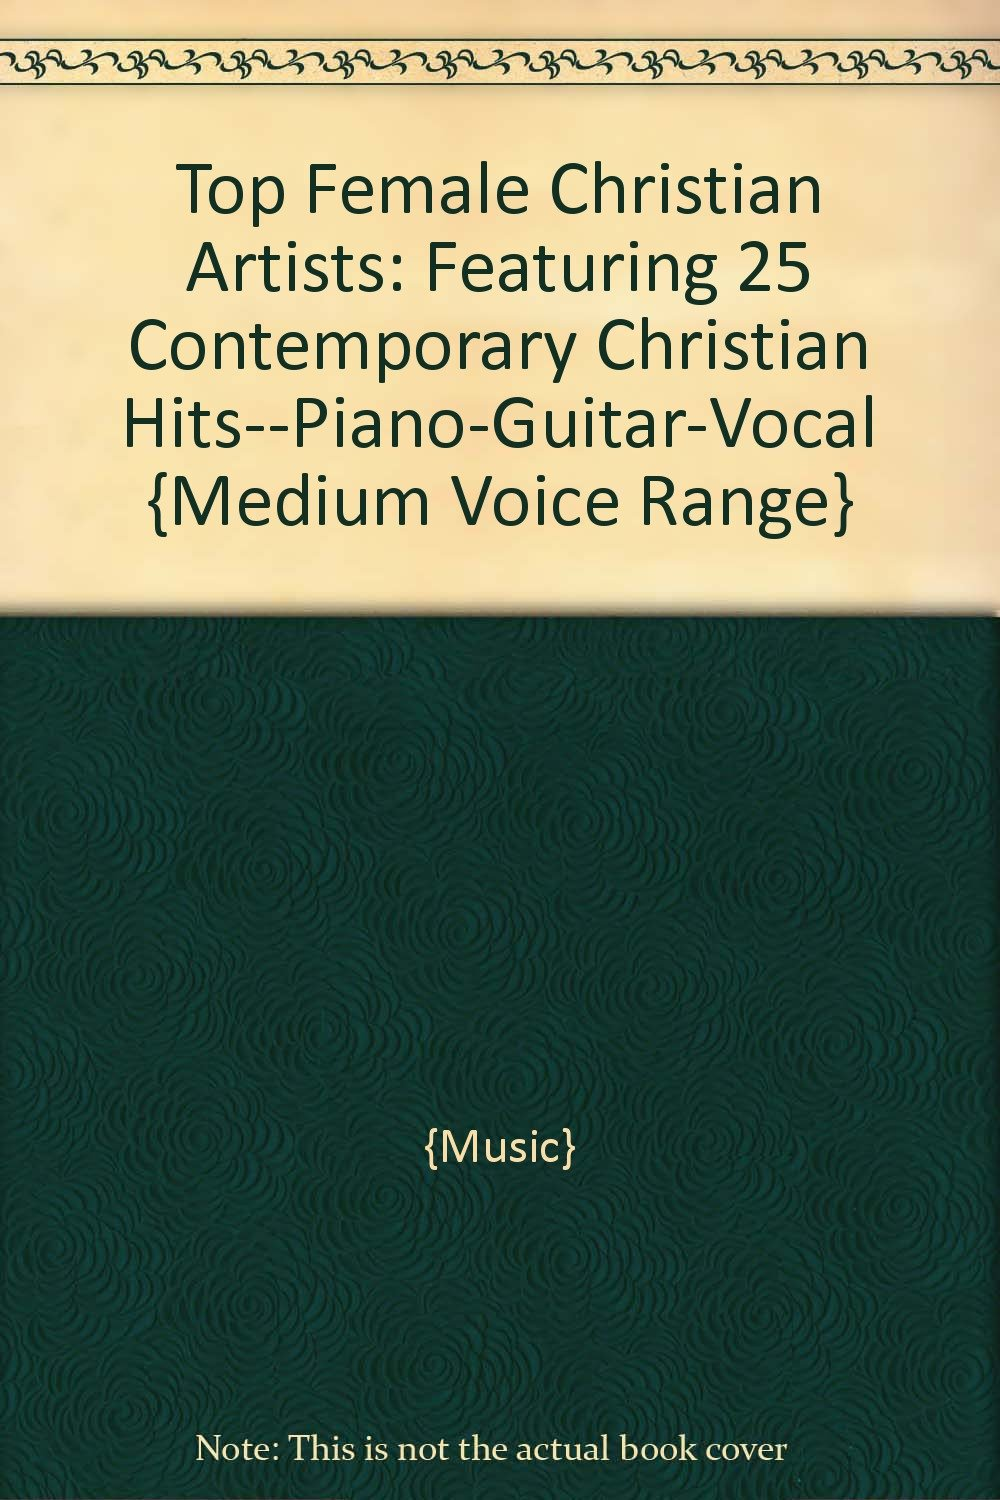 Top Female Christian Artists: Featuring 25 Contemporary Christian Hits--Piano-Guitar-Vocal {Medium Voice Range} PDF